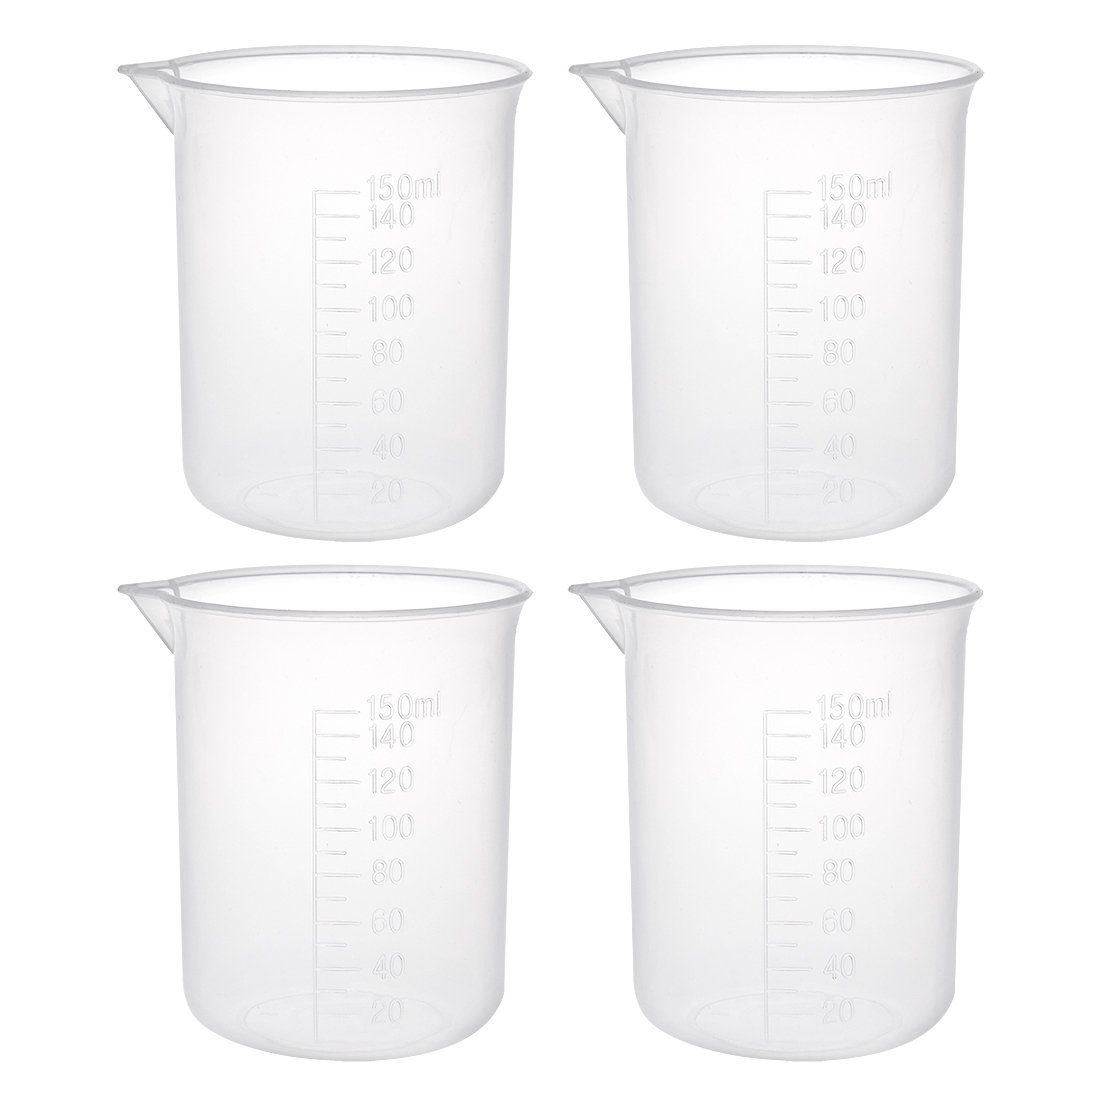 uxcell 4pcs Measuring Cup Labs PP Graduated Beakers 150ml a18031400ux0107